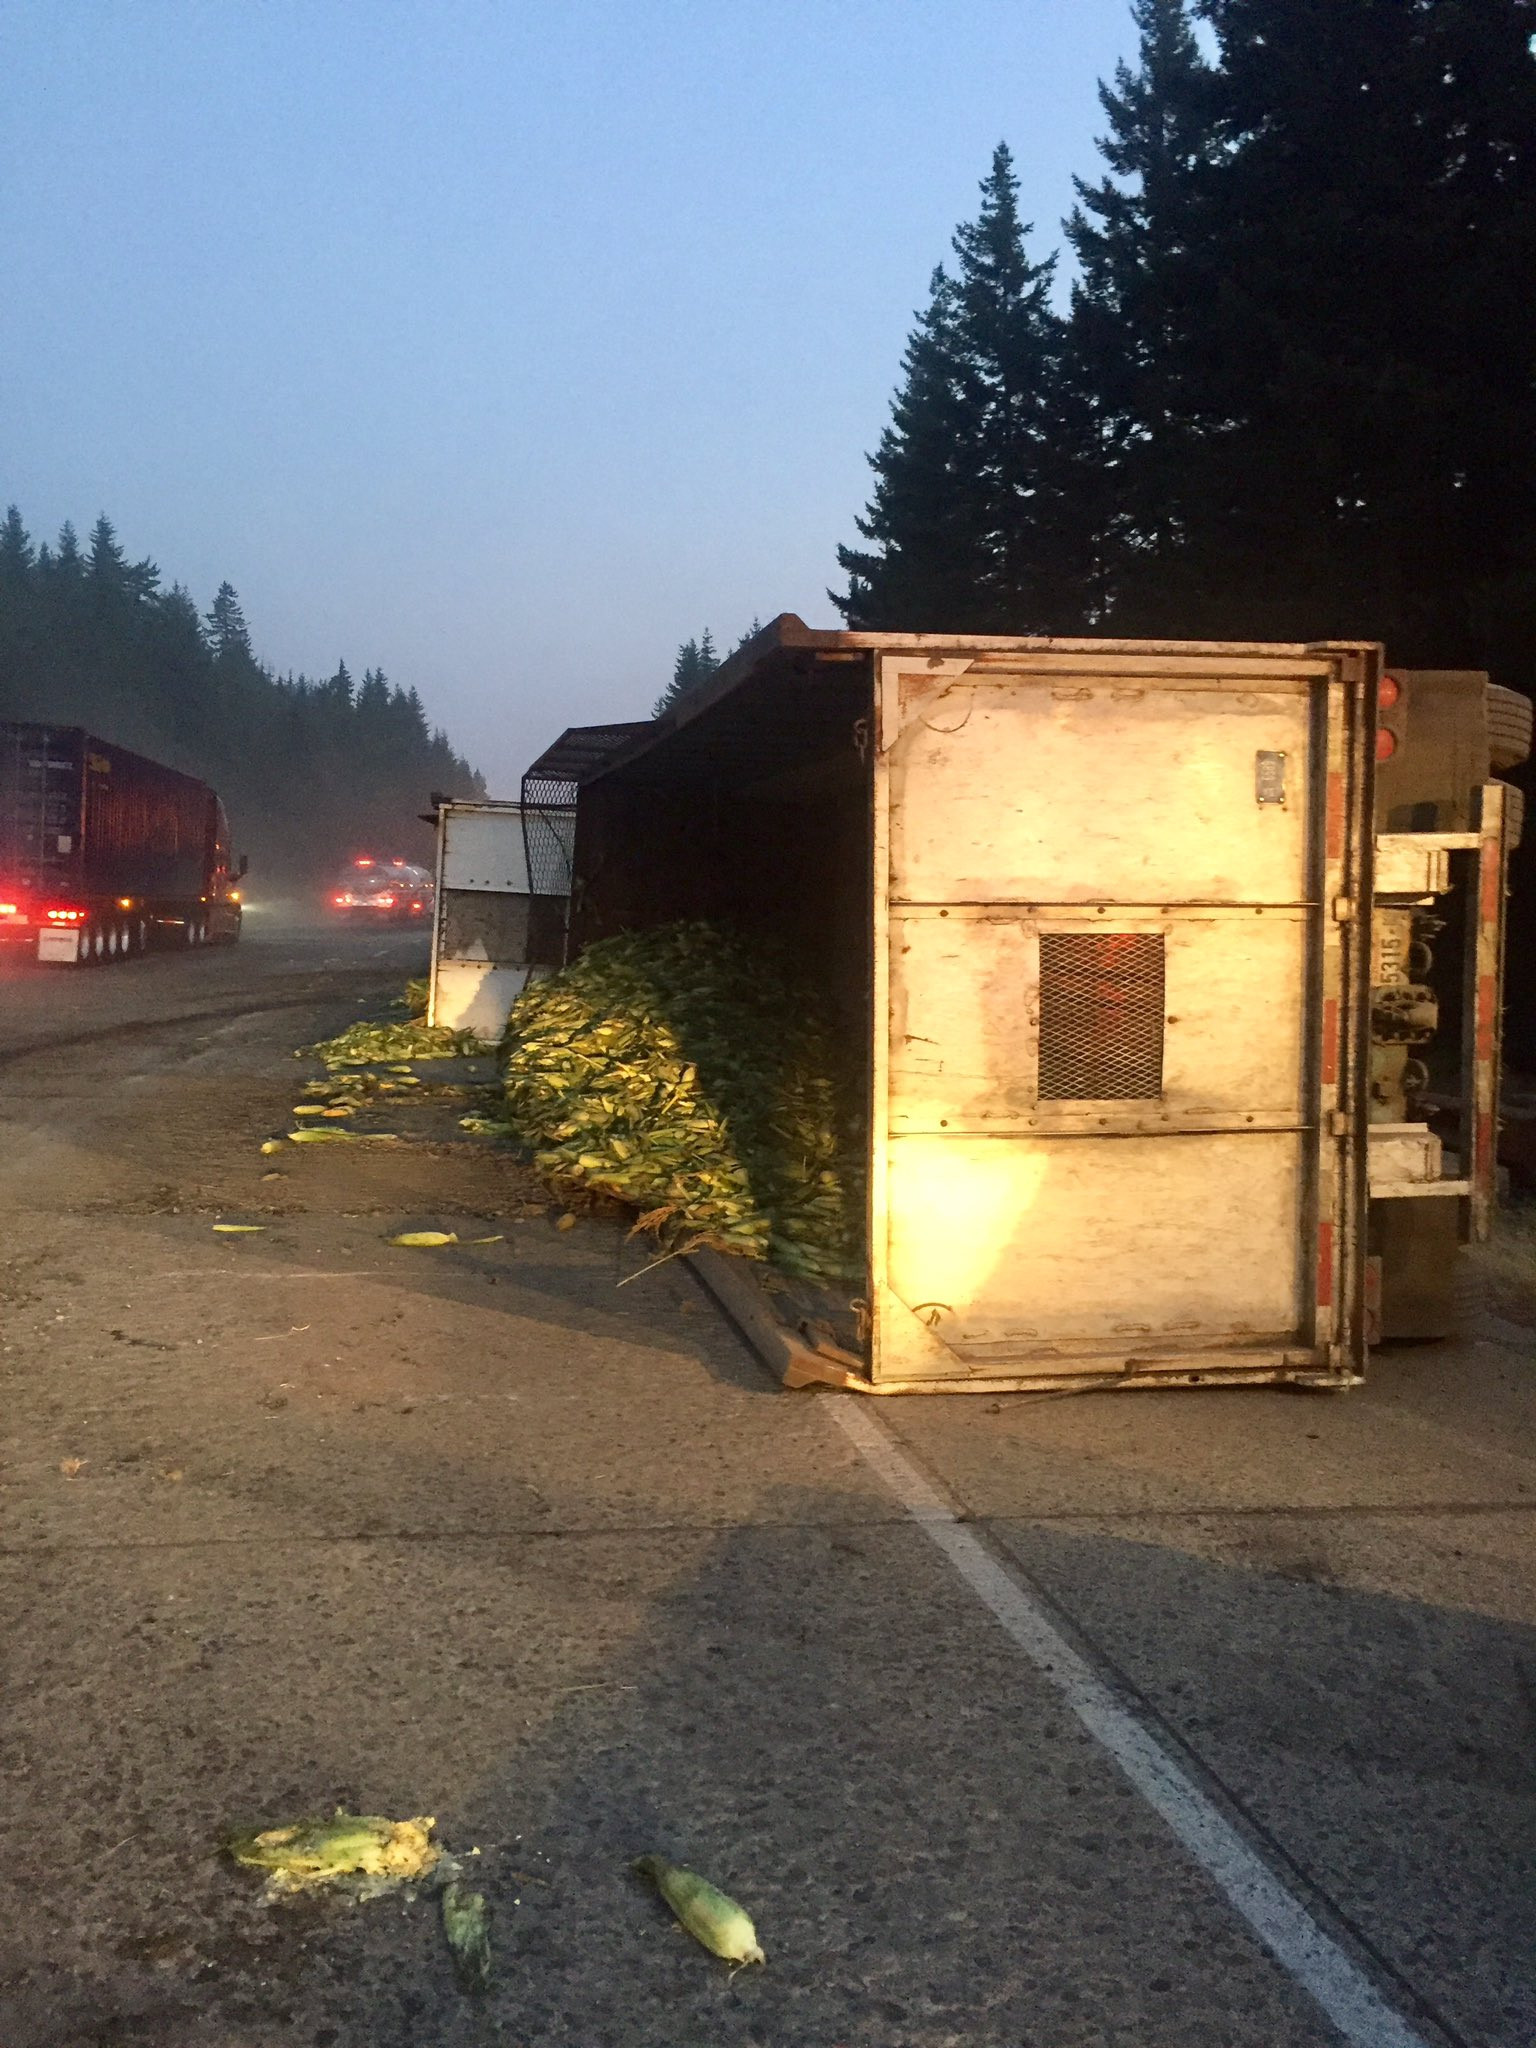 Corn strewn across I-90 near Snoqualmie Pass after two semi trucks collide (Photo: Washington State Patrol)